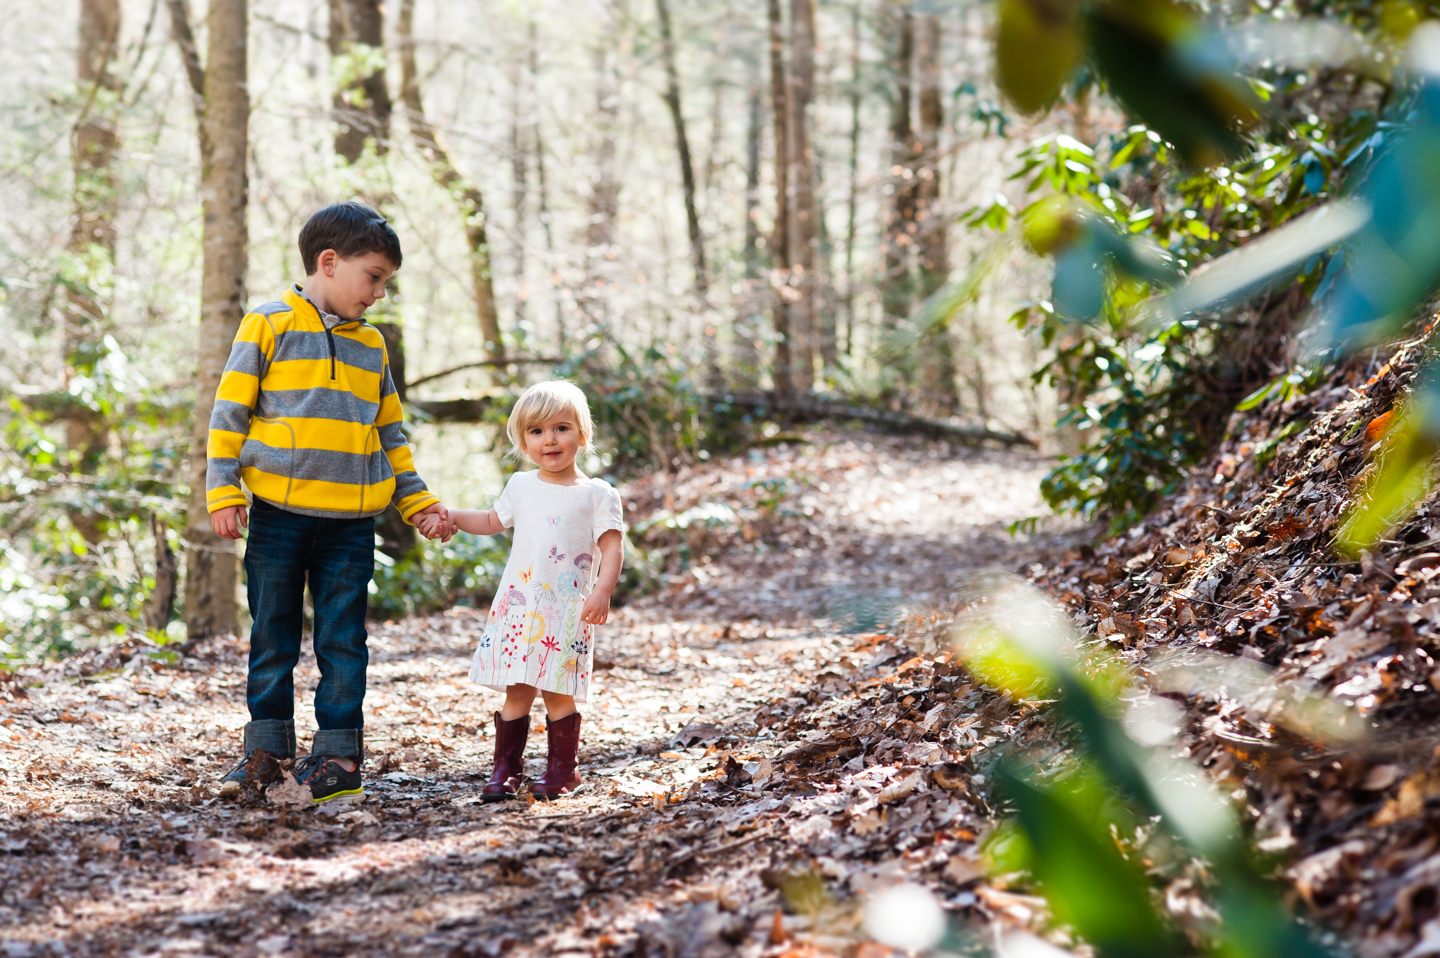 adorable kiddos hold hands on wooded path